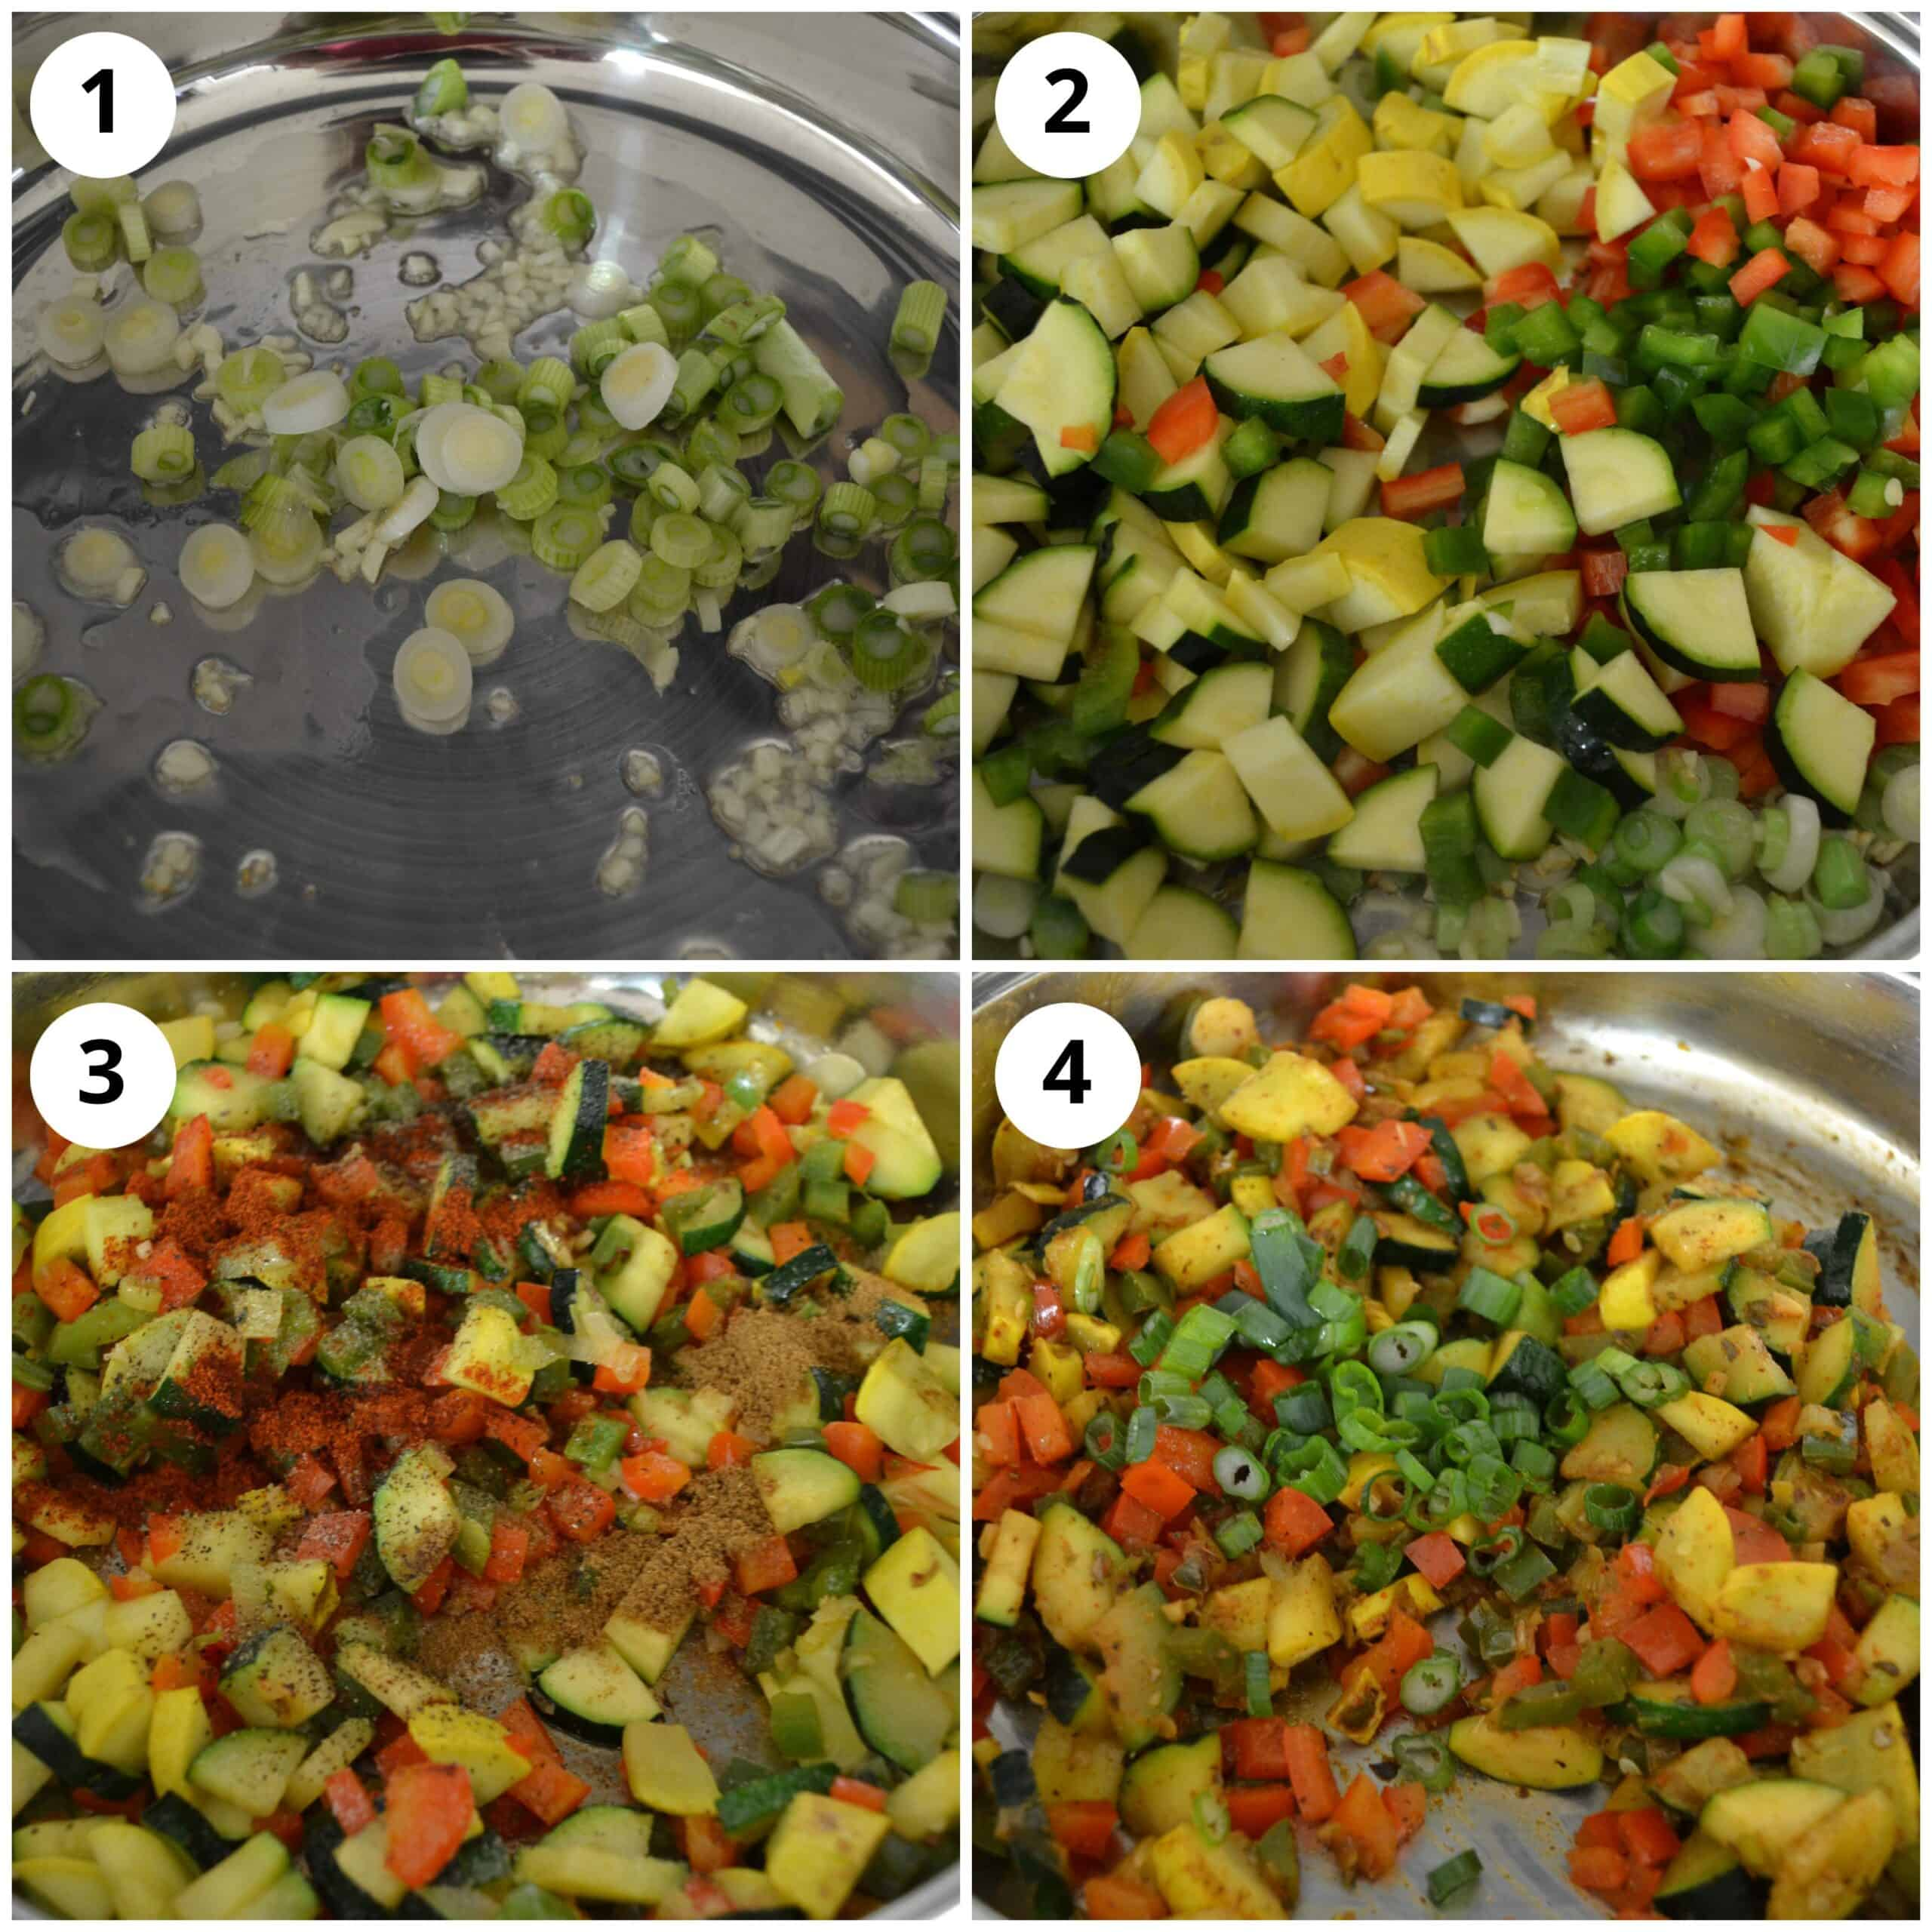 Cooking the vegetable filling in a pan